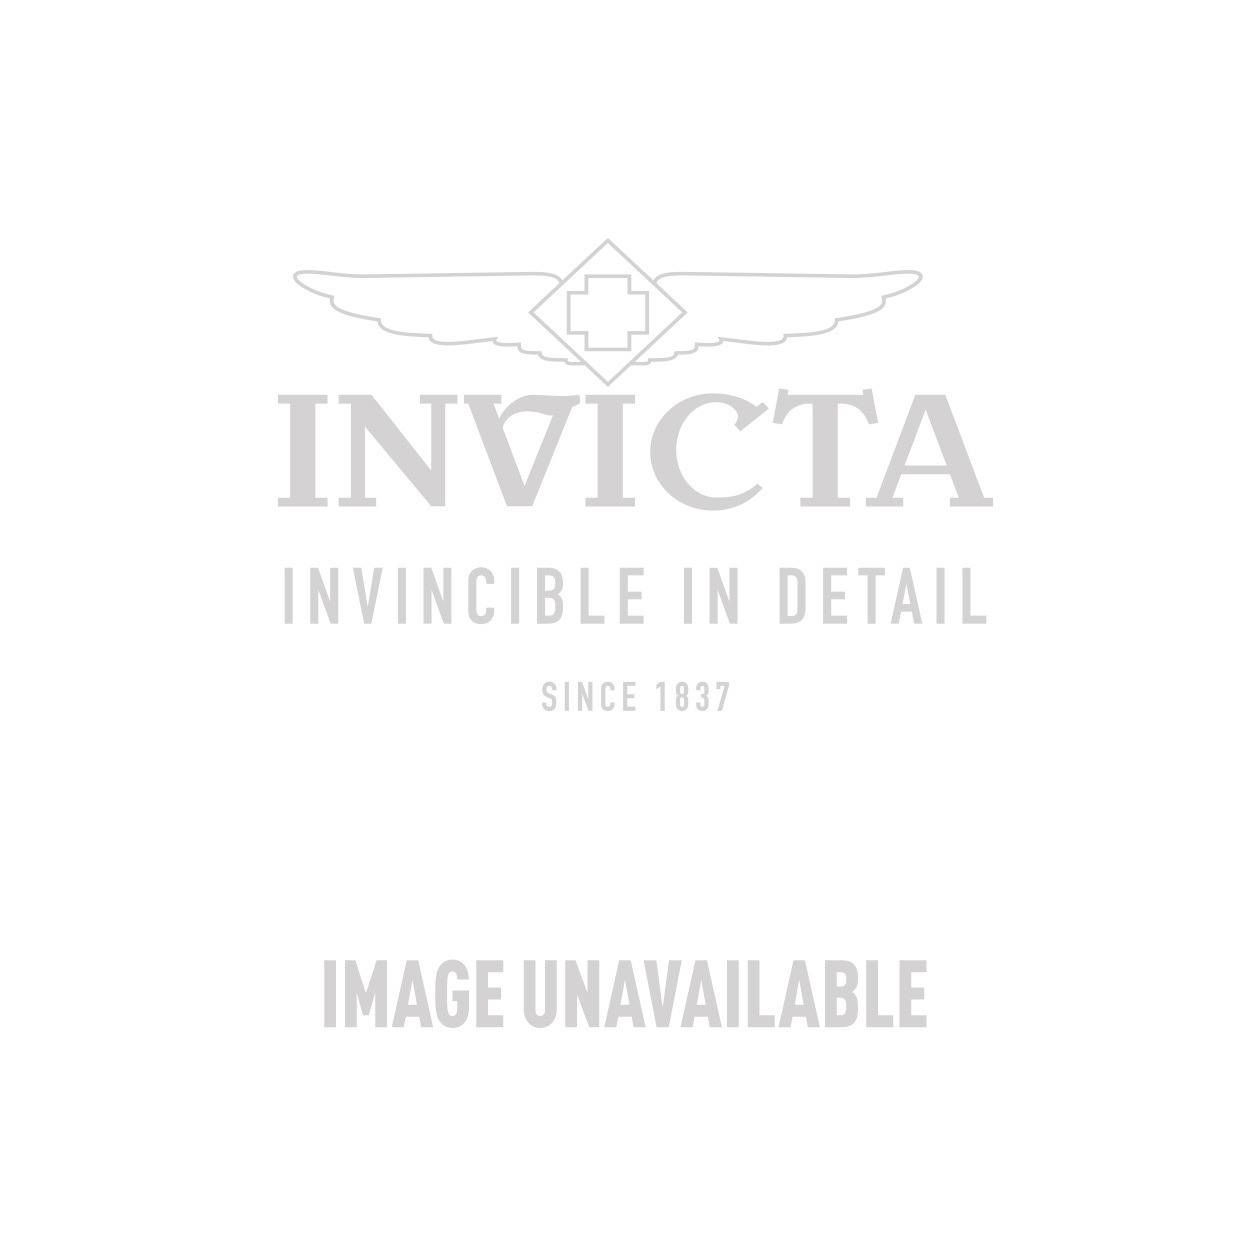 Invicta Specialty Quartz Watch - Gold, Stainless Steel case with Steel, Gold tone Stainless Steel band - Model 17441